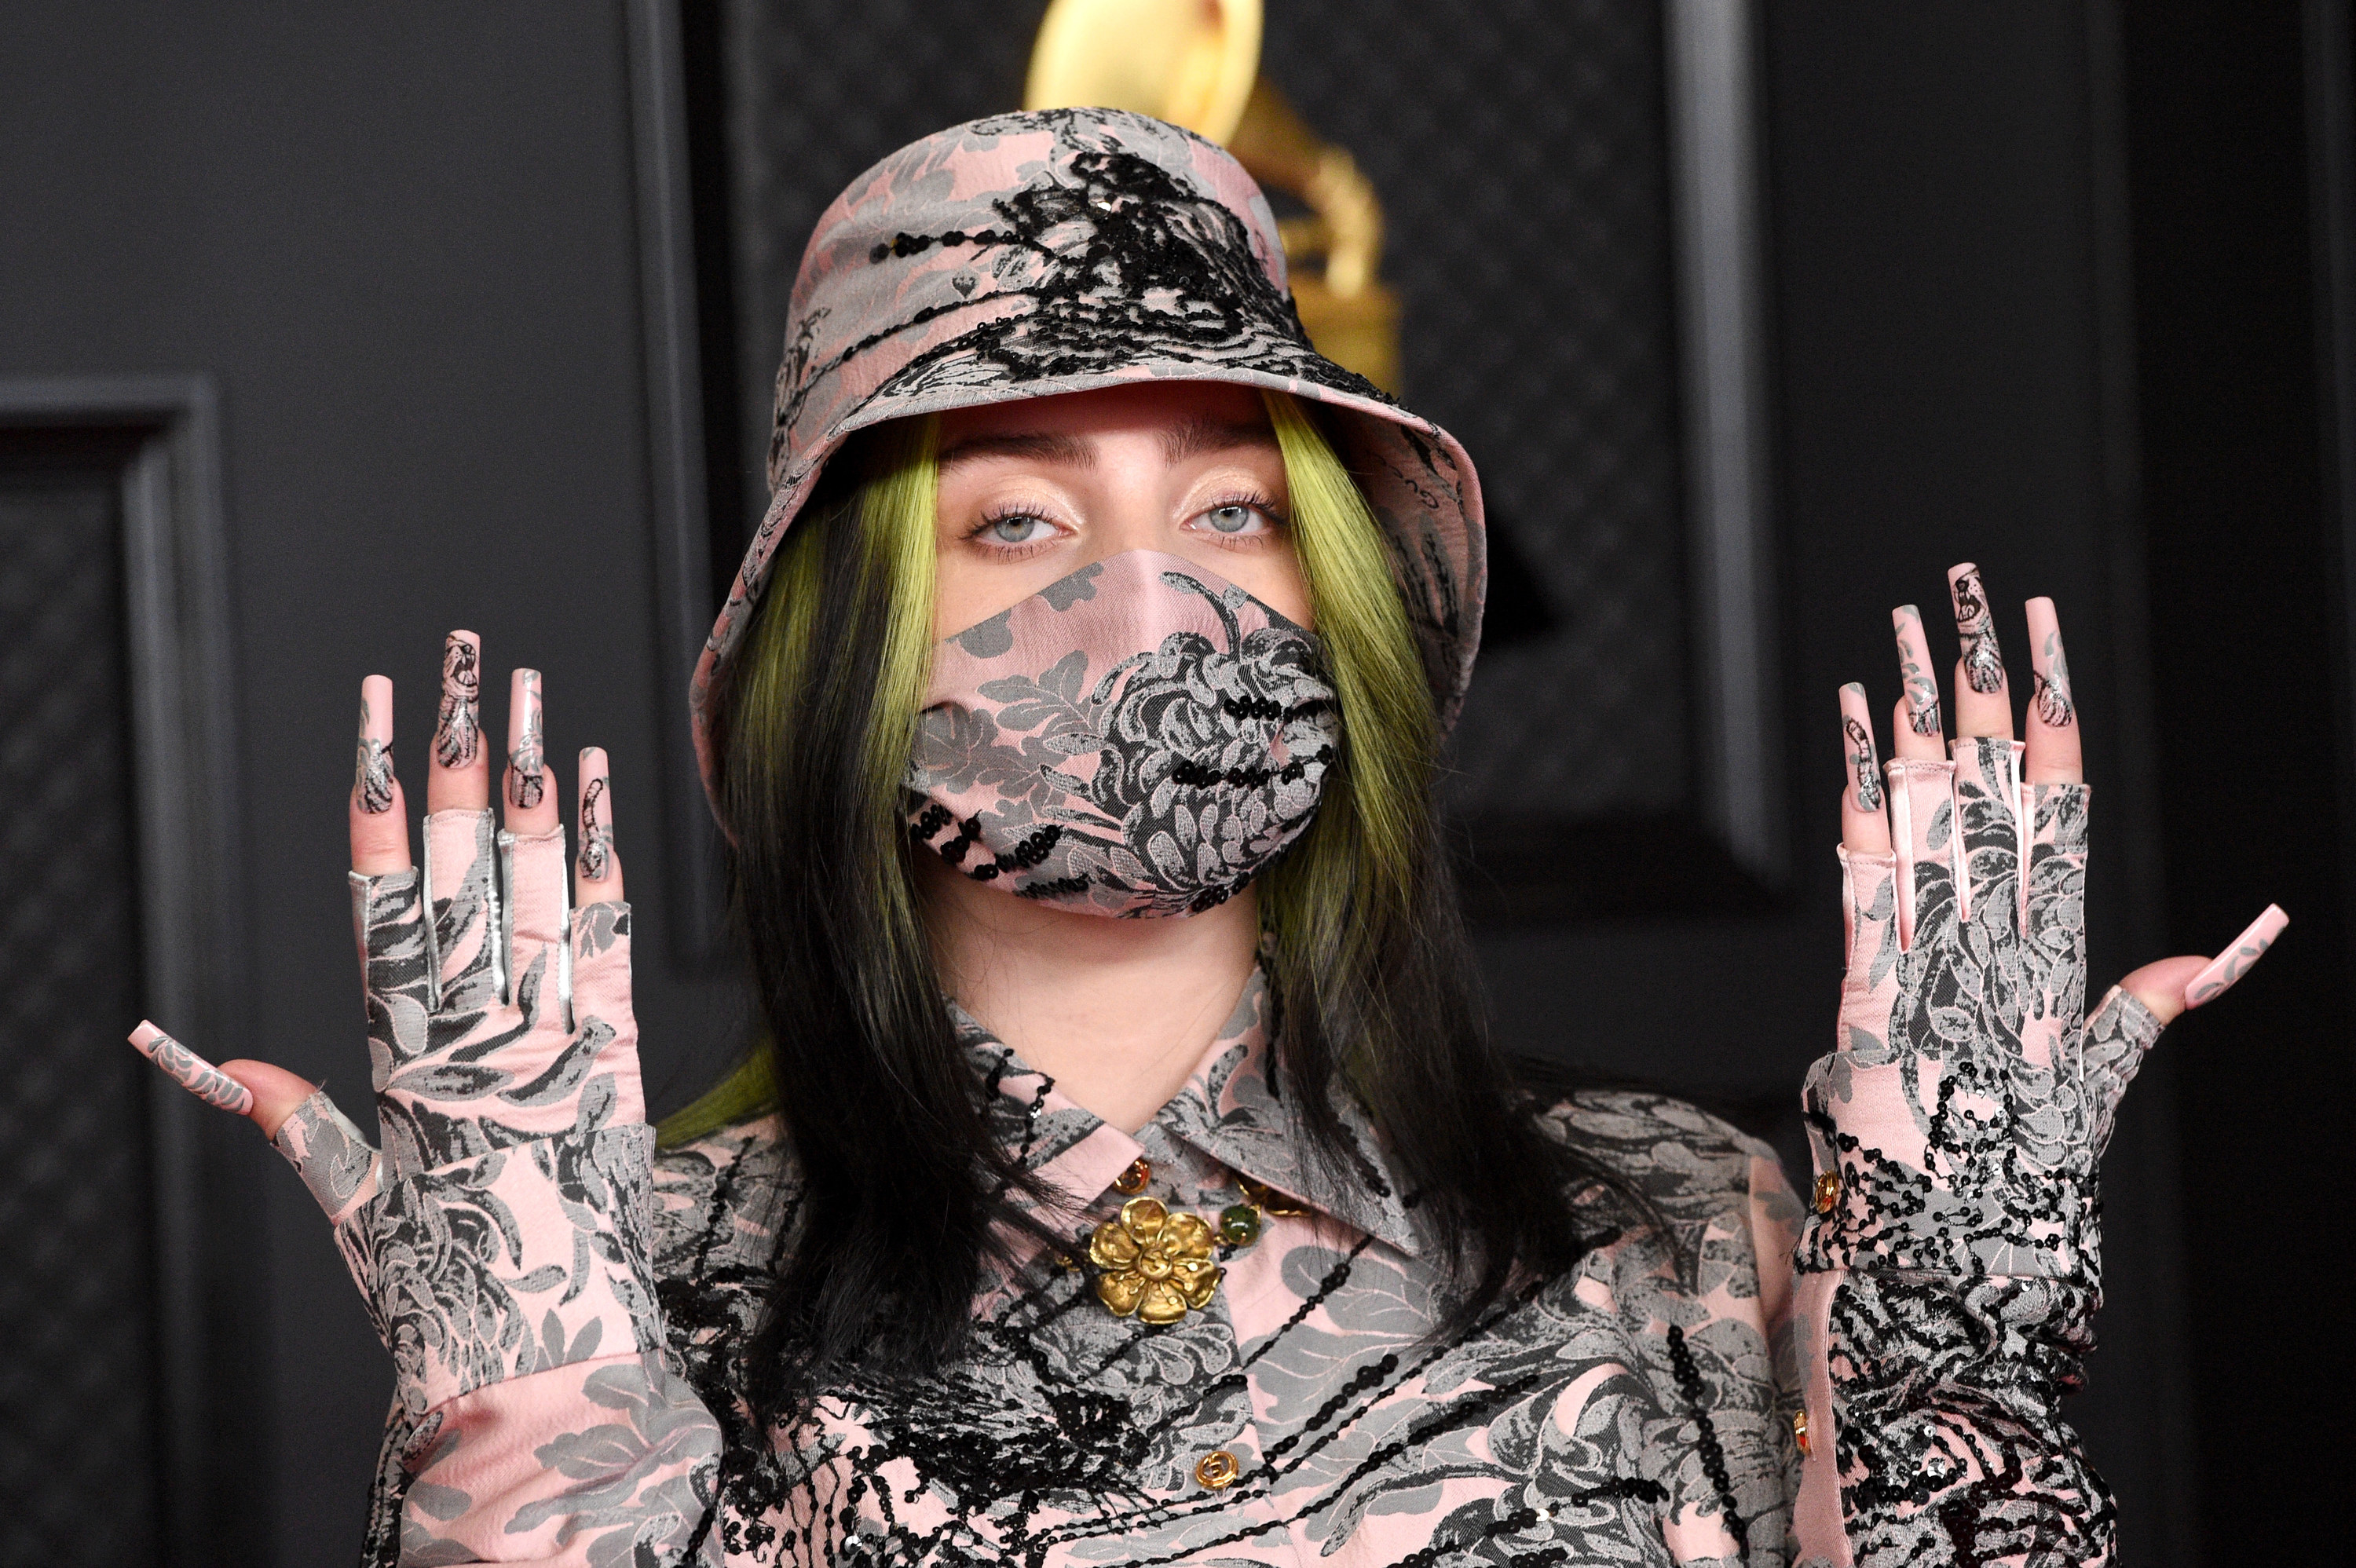 Billie showing off her floral printed nails that match her top, bucket hat, and face mask at the Grammys